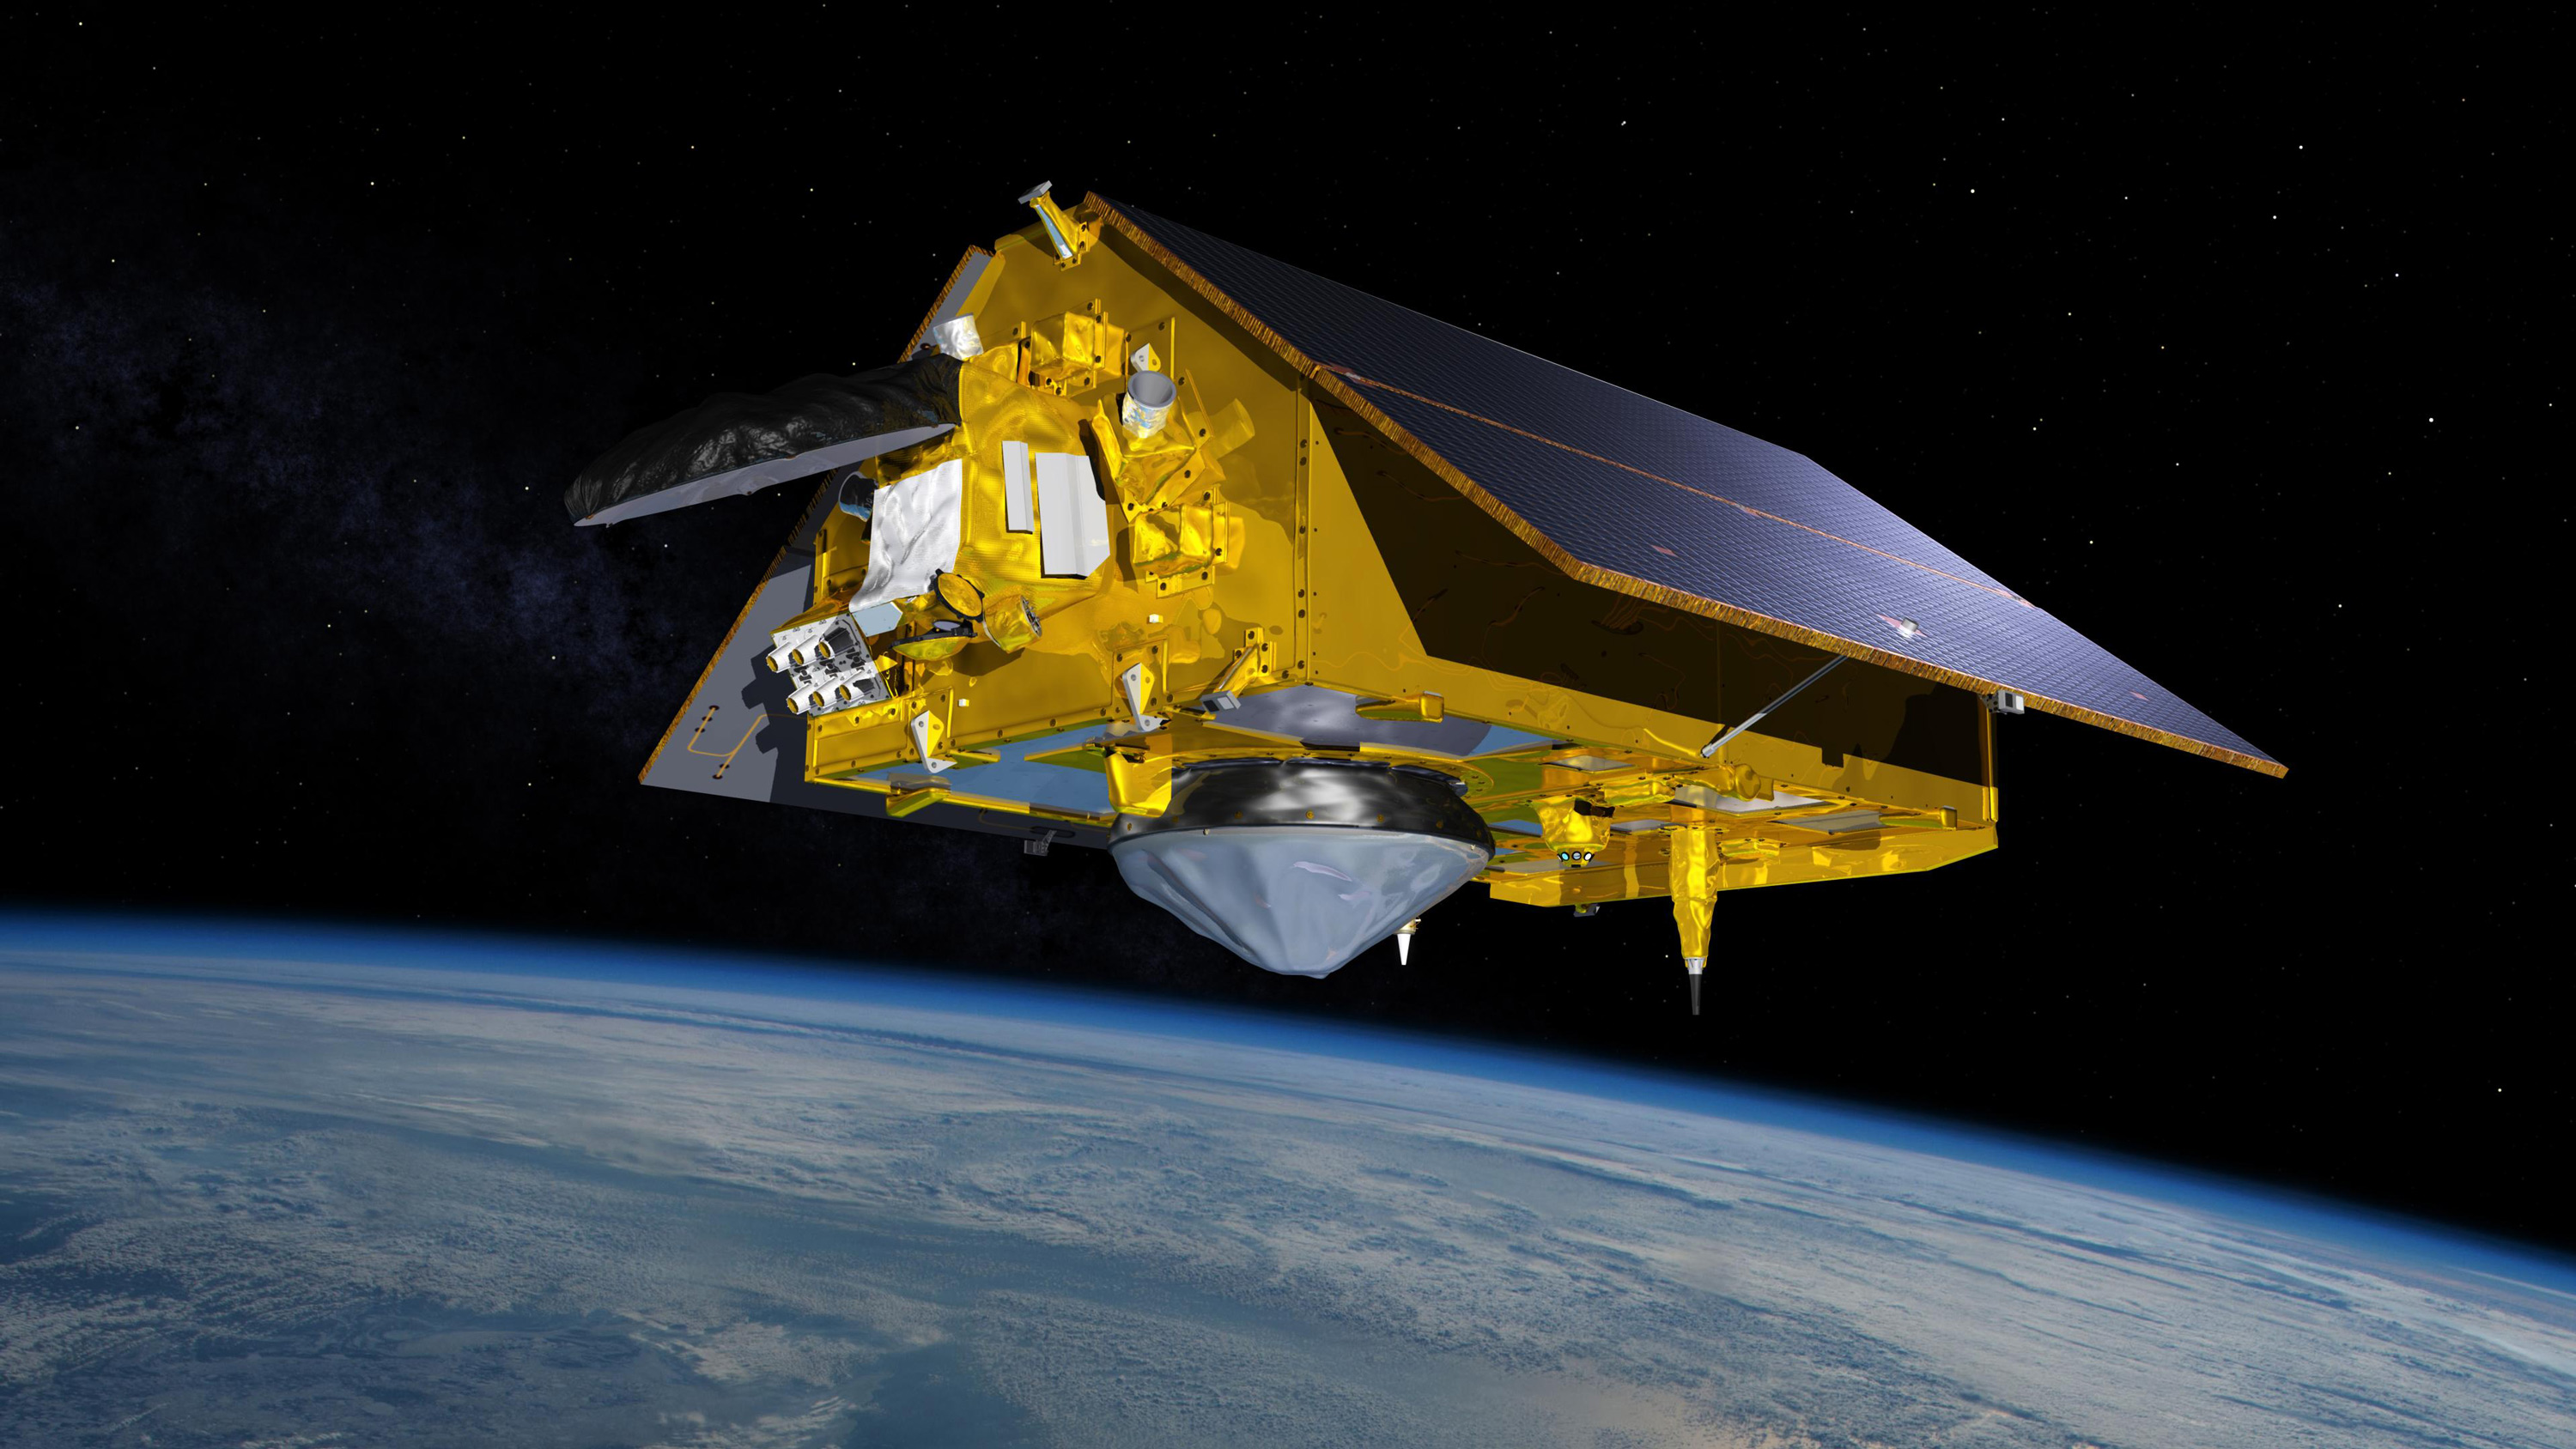 NASA launch Saturday: This satellite will track Earth's sea level rise